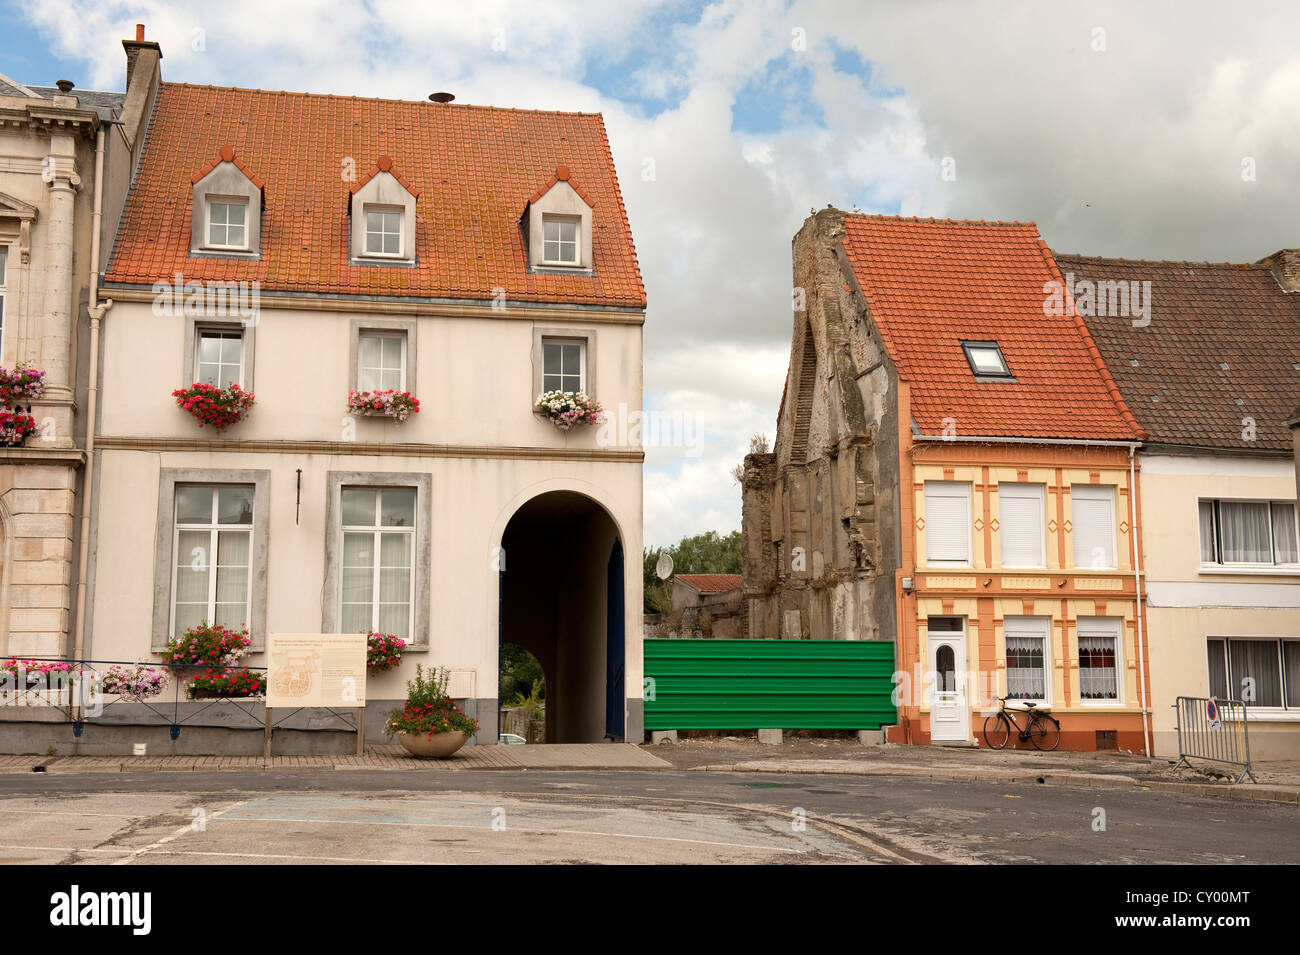 Missing House Collapsed Gap Demolished Guines France Europe - Stock Image